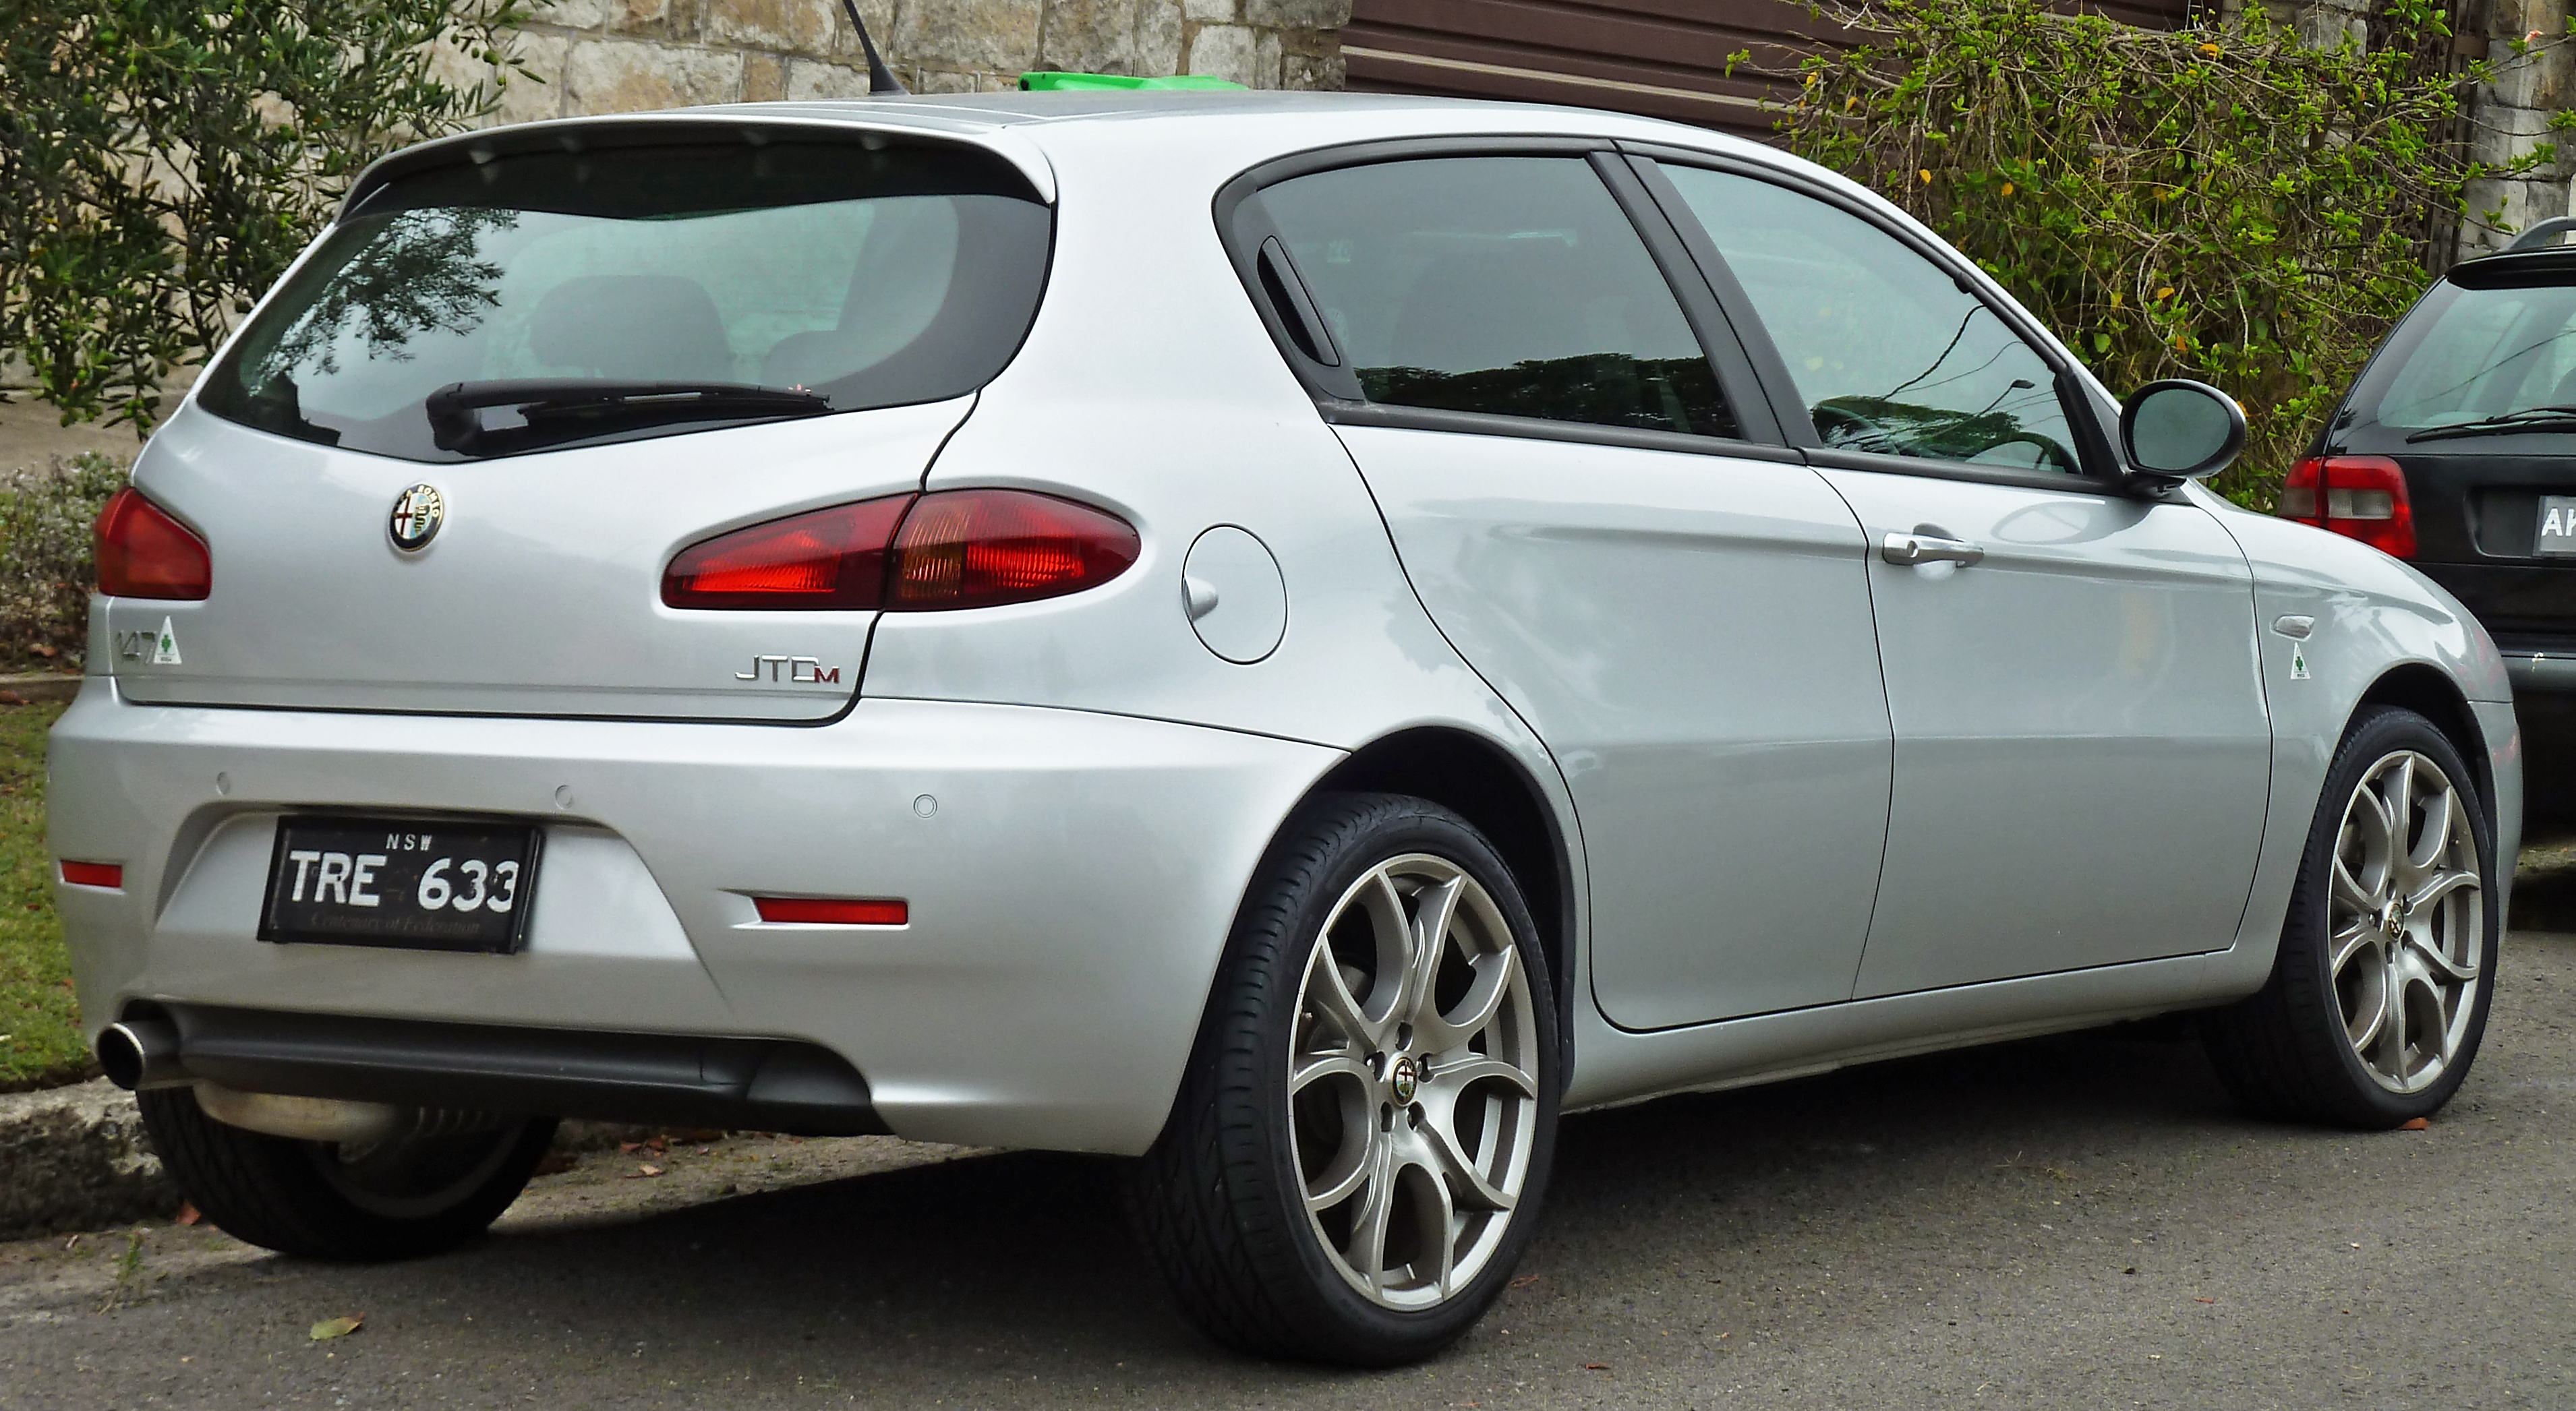 2001 Alfa Romeo 147 s Informations Articles BestCarMag